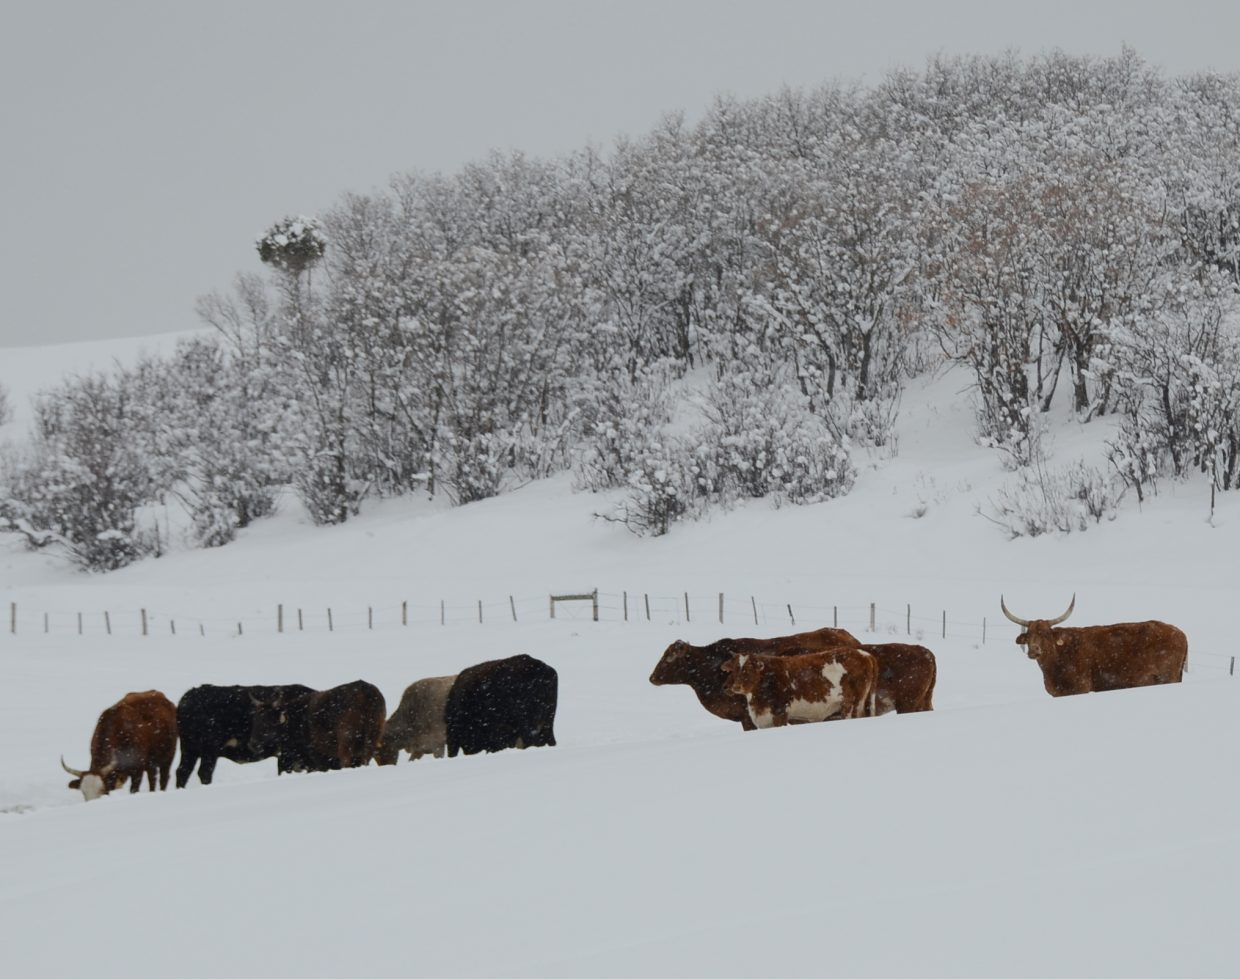 I drove up Elk River Road on Monday toward Clark. I stopped to take a few pictures of some snowy animals along the way. Submitted by: Shannon Lukens